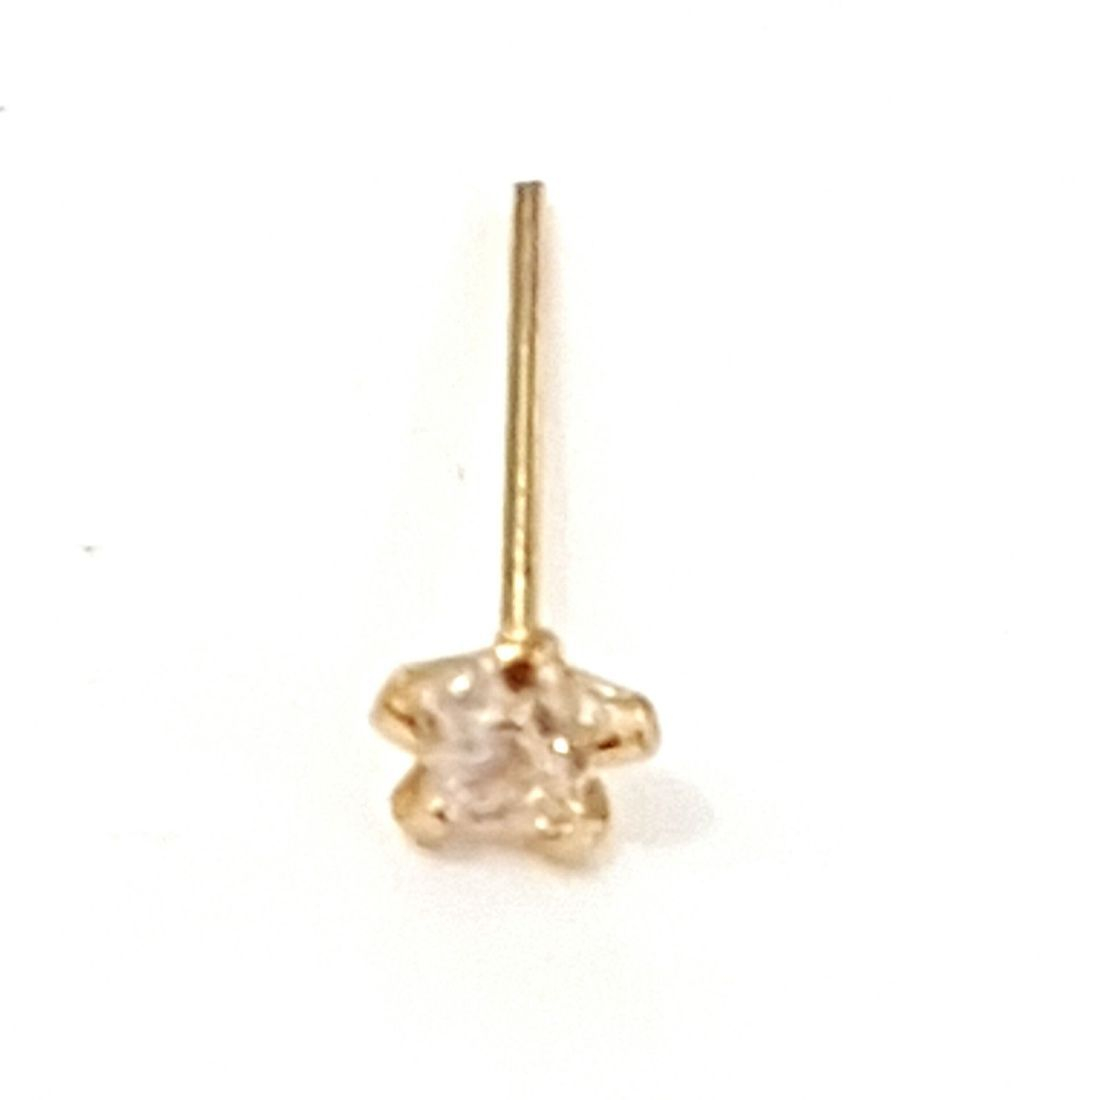 14ct gold star crystal nose stud available at Kazbah online and our Leicester City Centre Shop